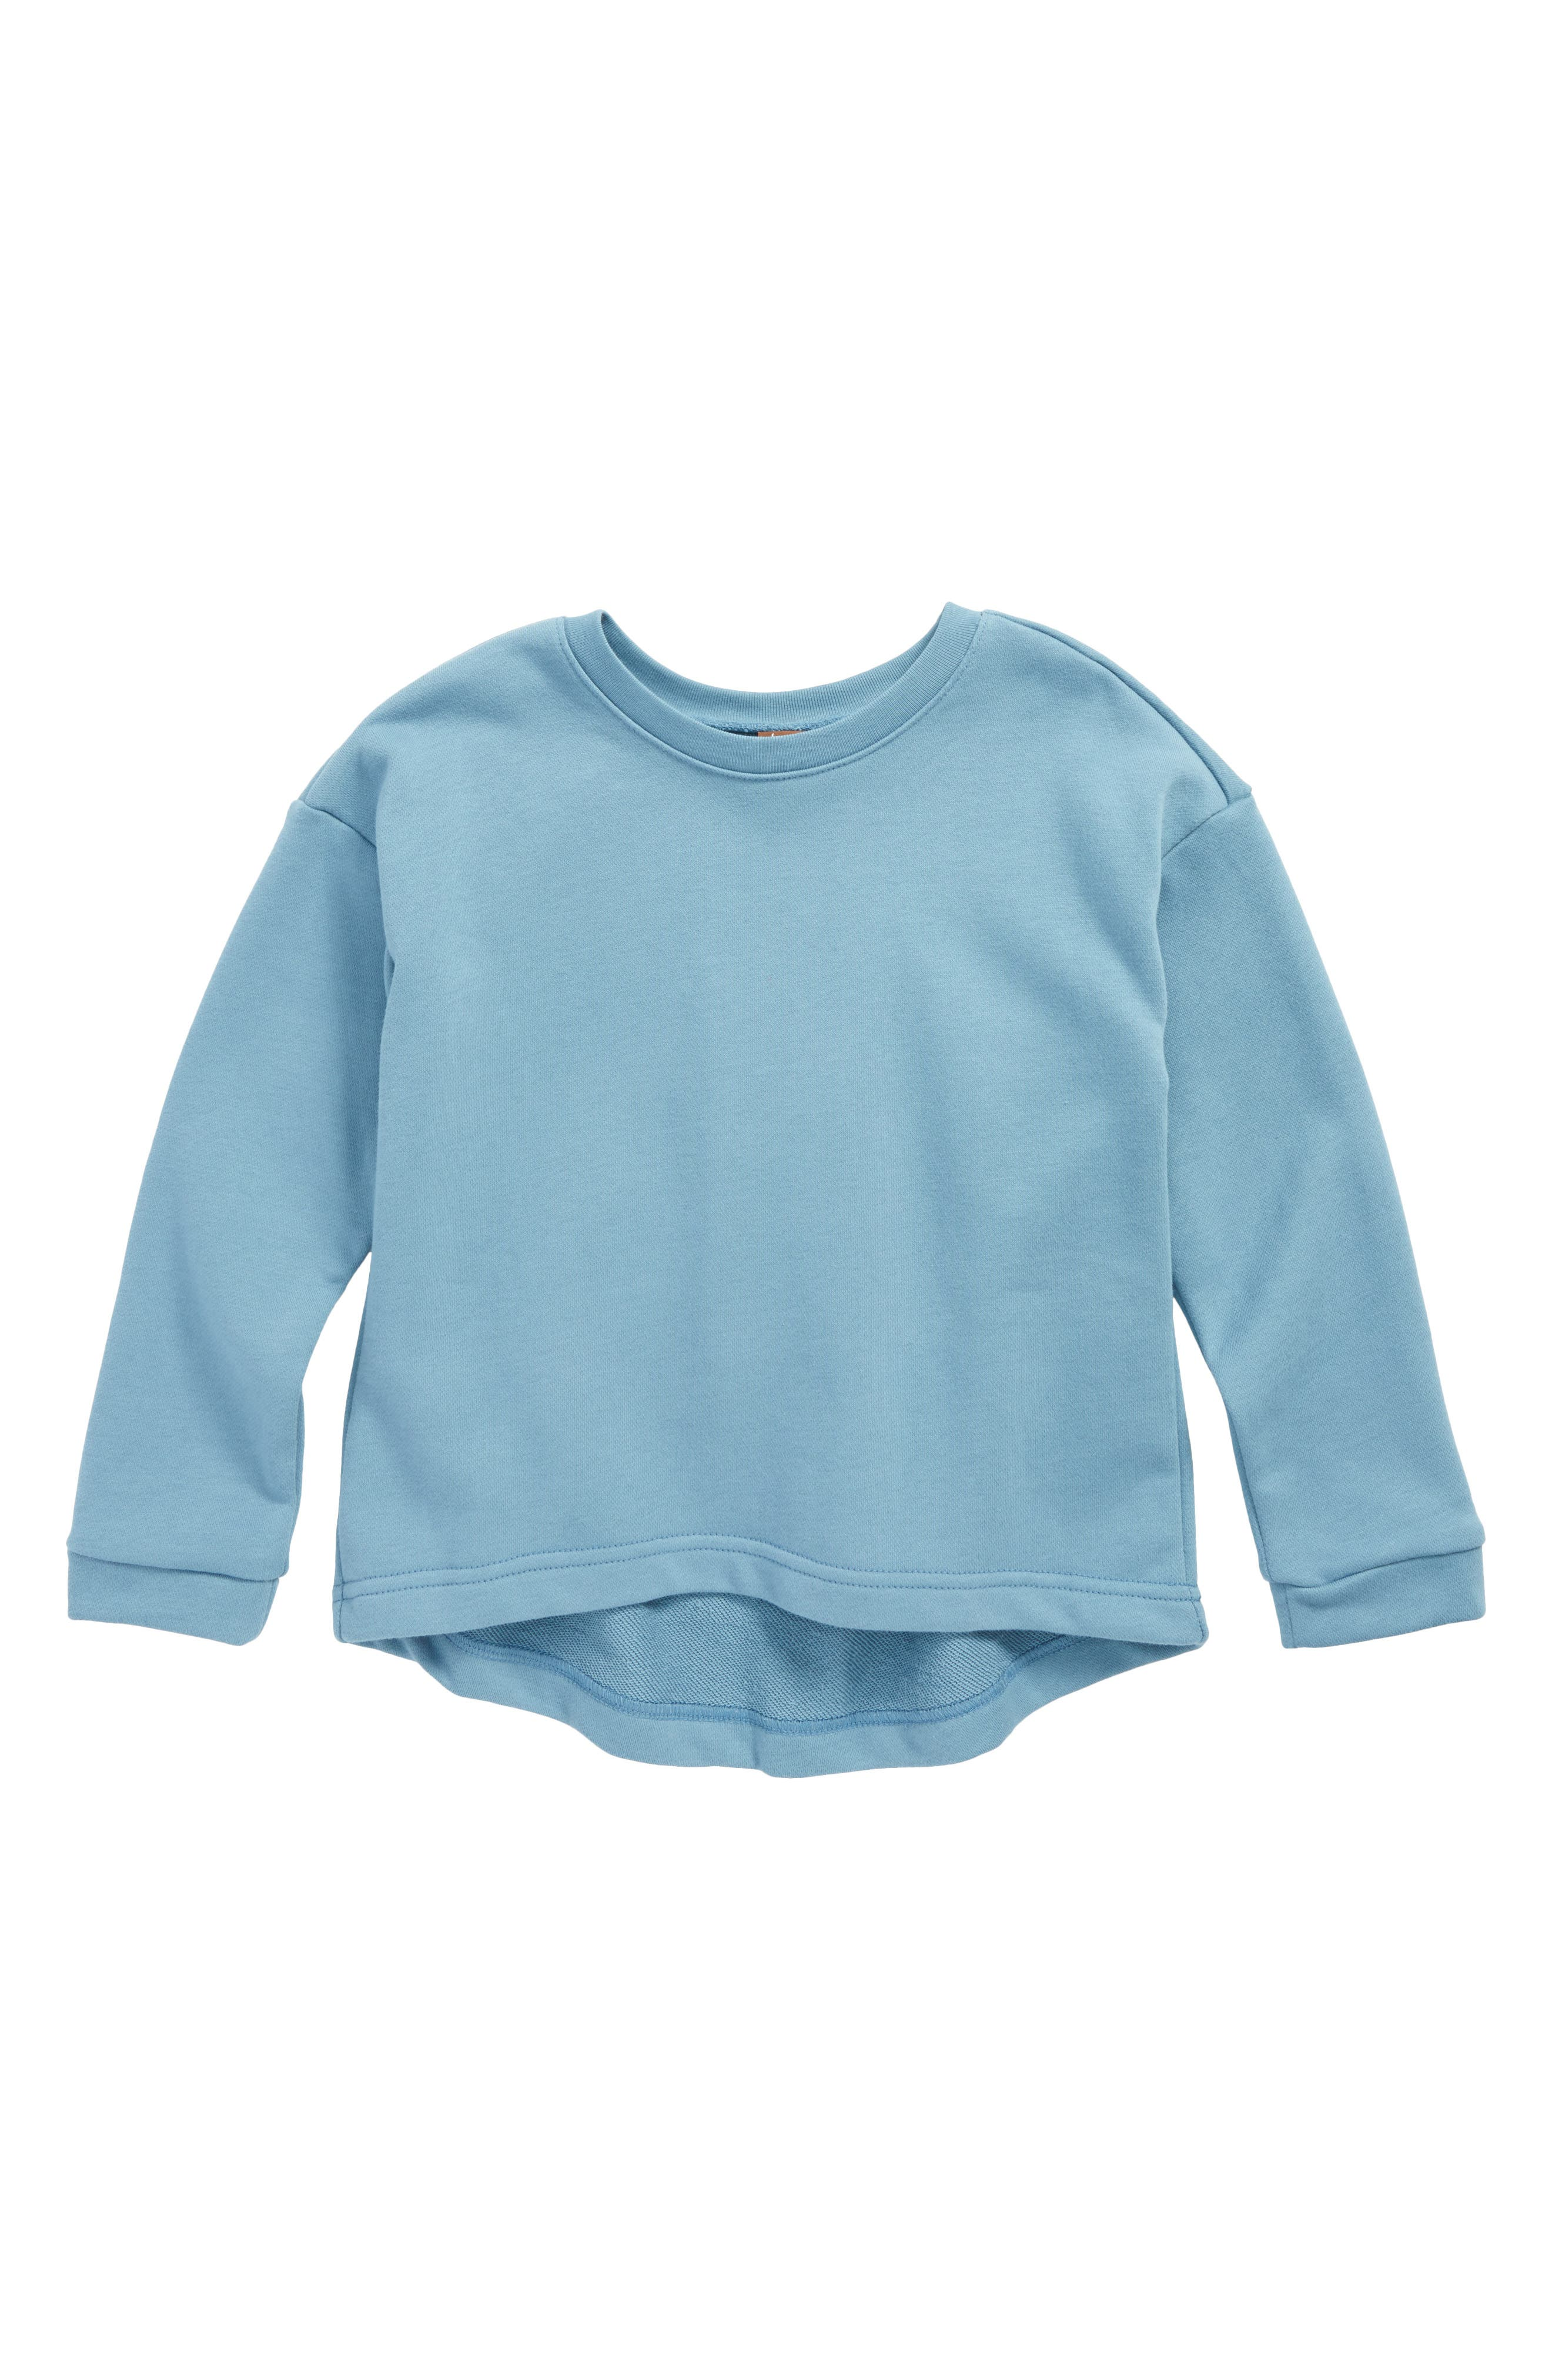 Fairy Wings Pullover,                         Main,                         color, Monsoon